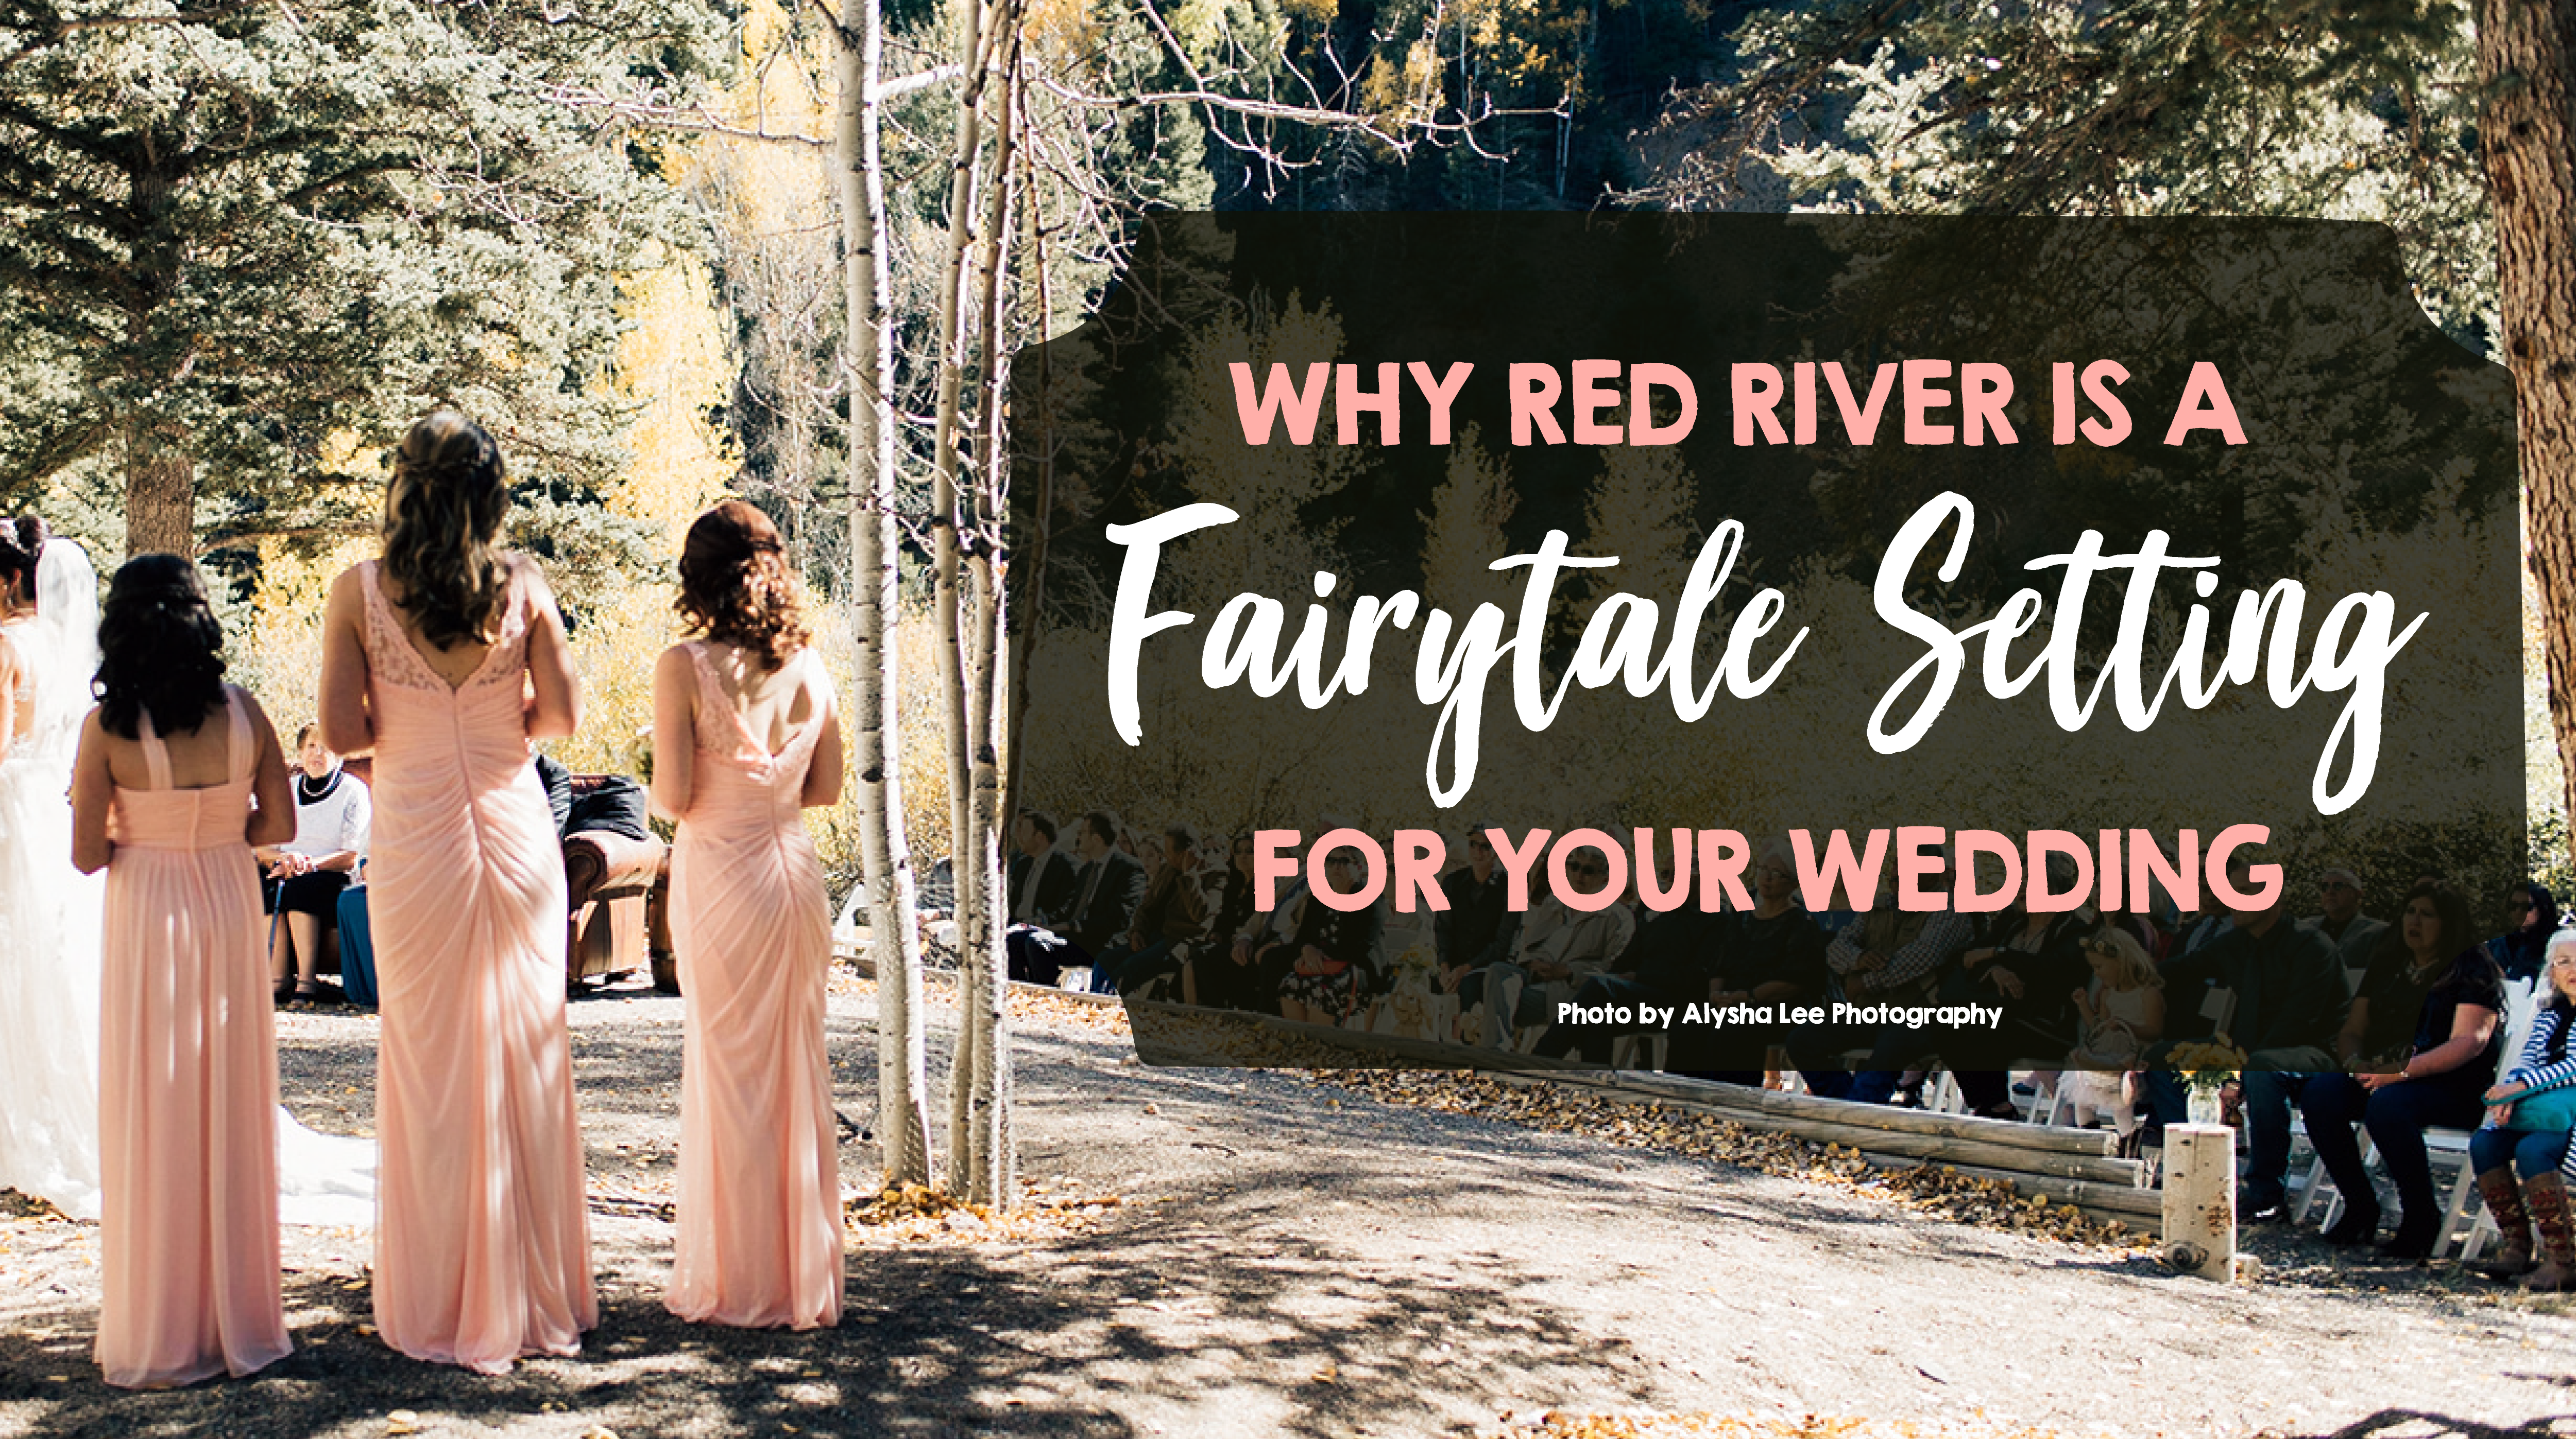 Red River is a Fairytale Setting for Your Wedding